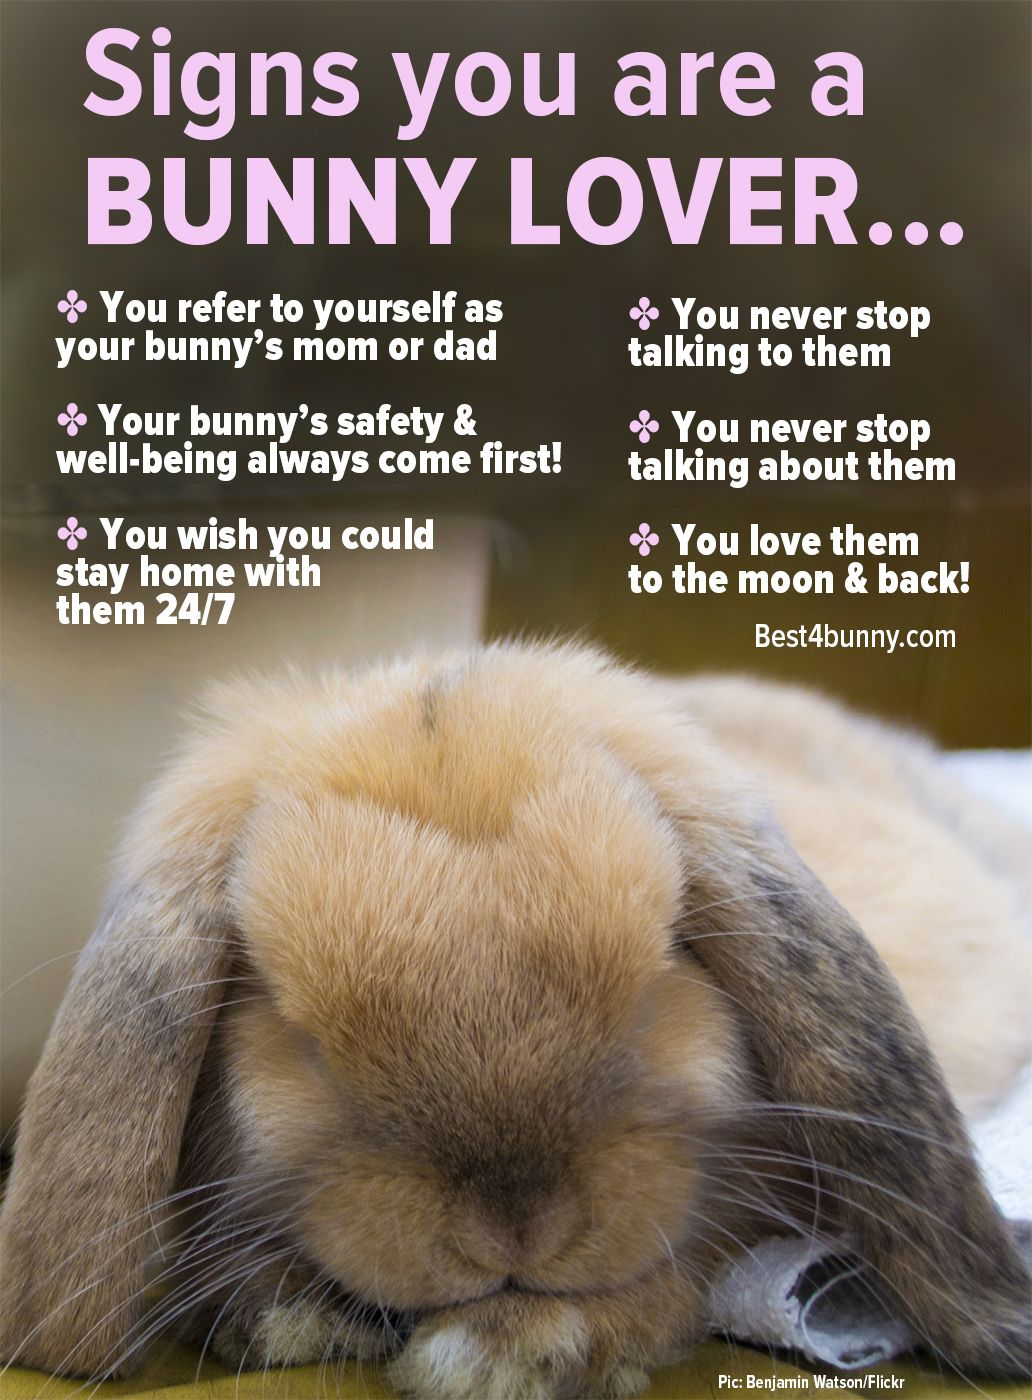 Signs You Are A Bunny Lover Www Best4bunny Com Bunny Lovers